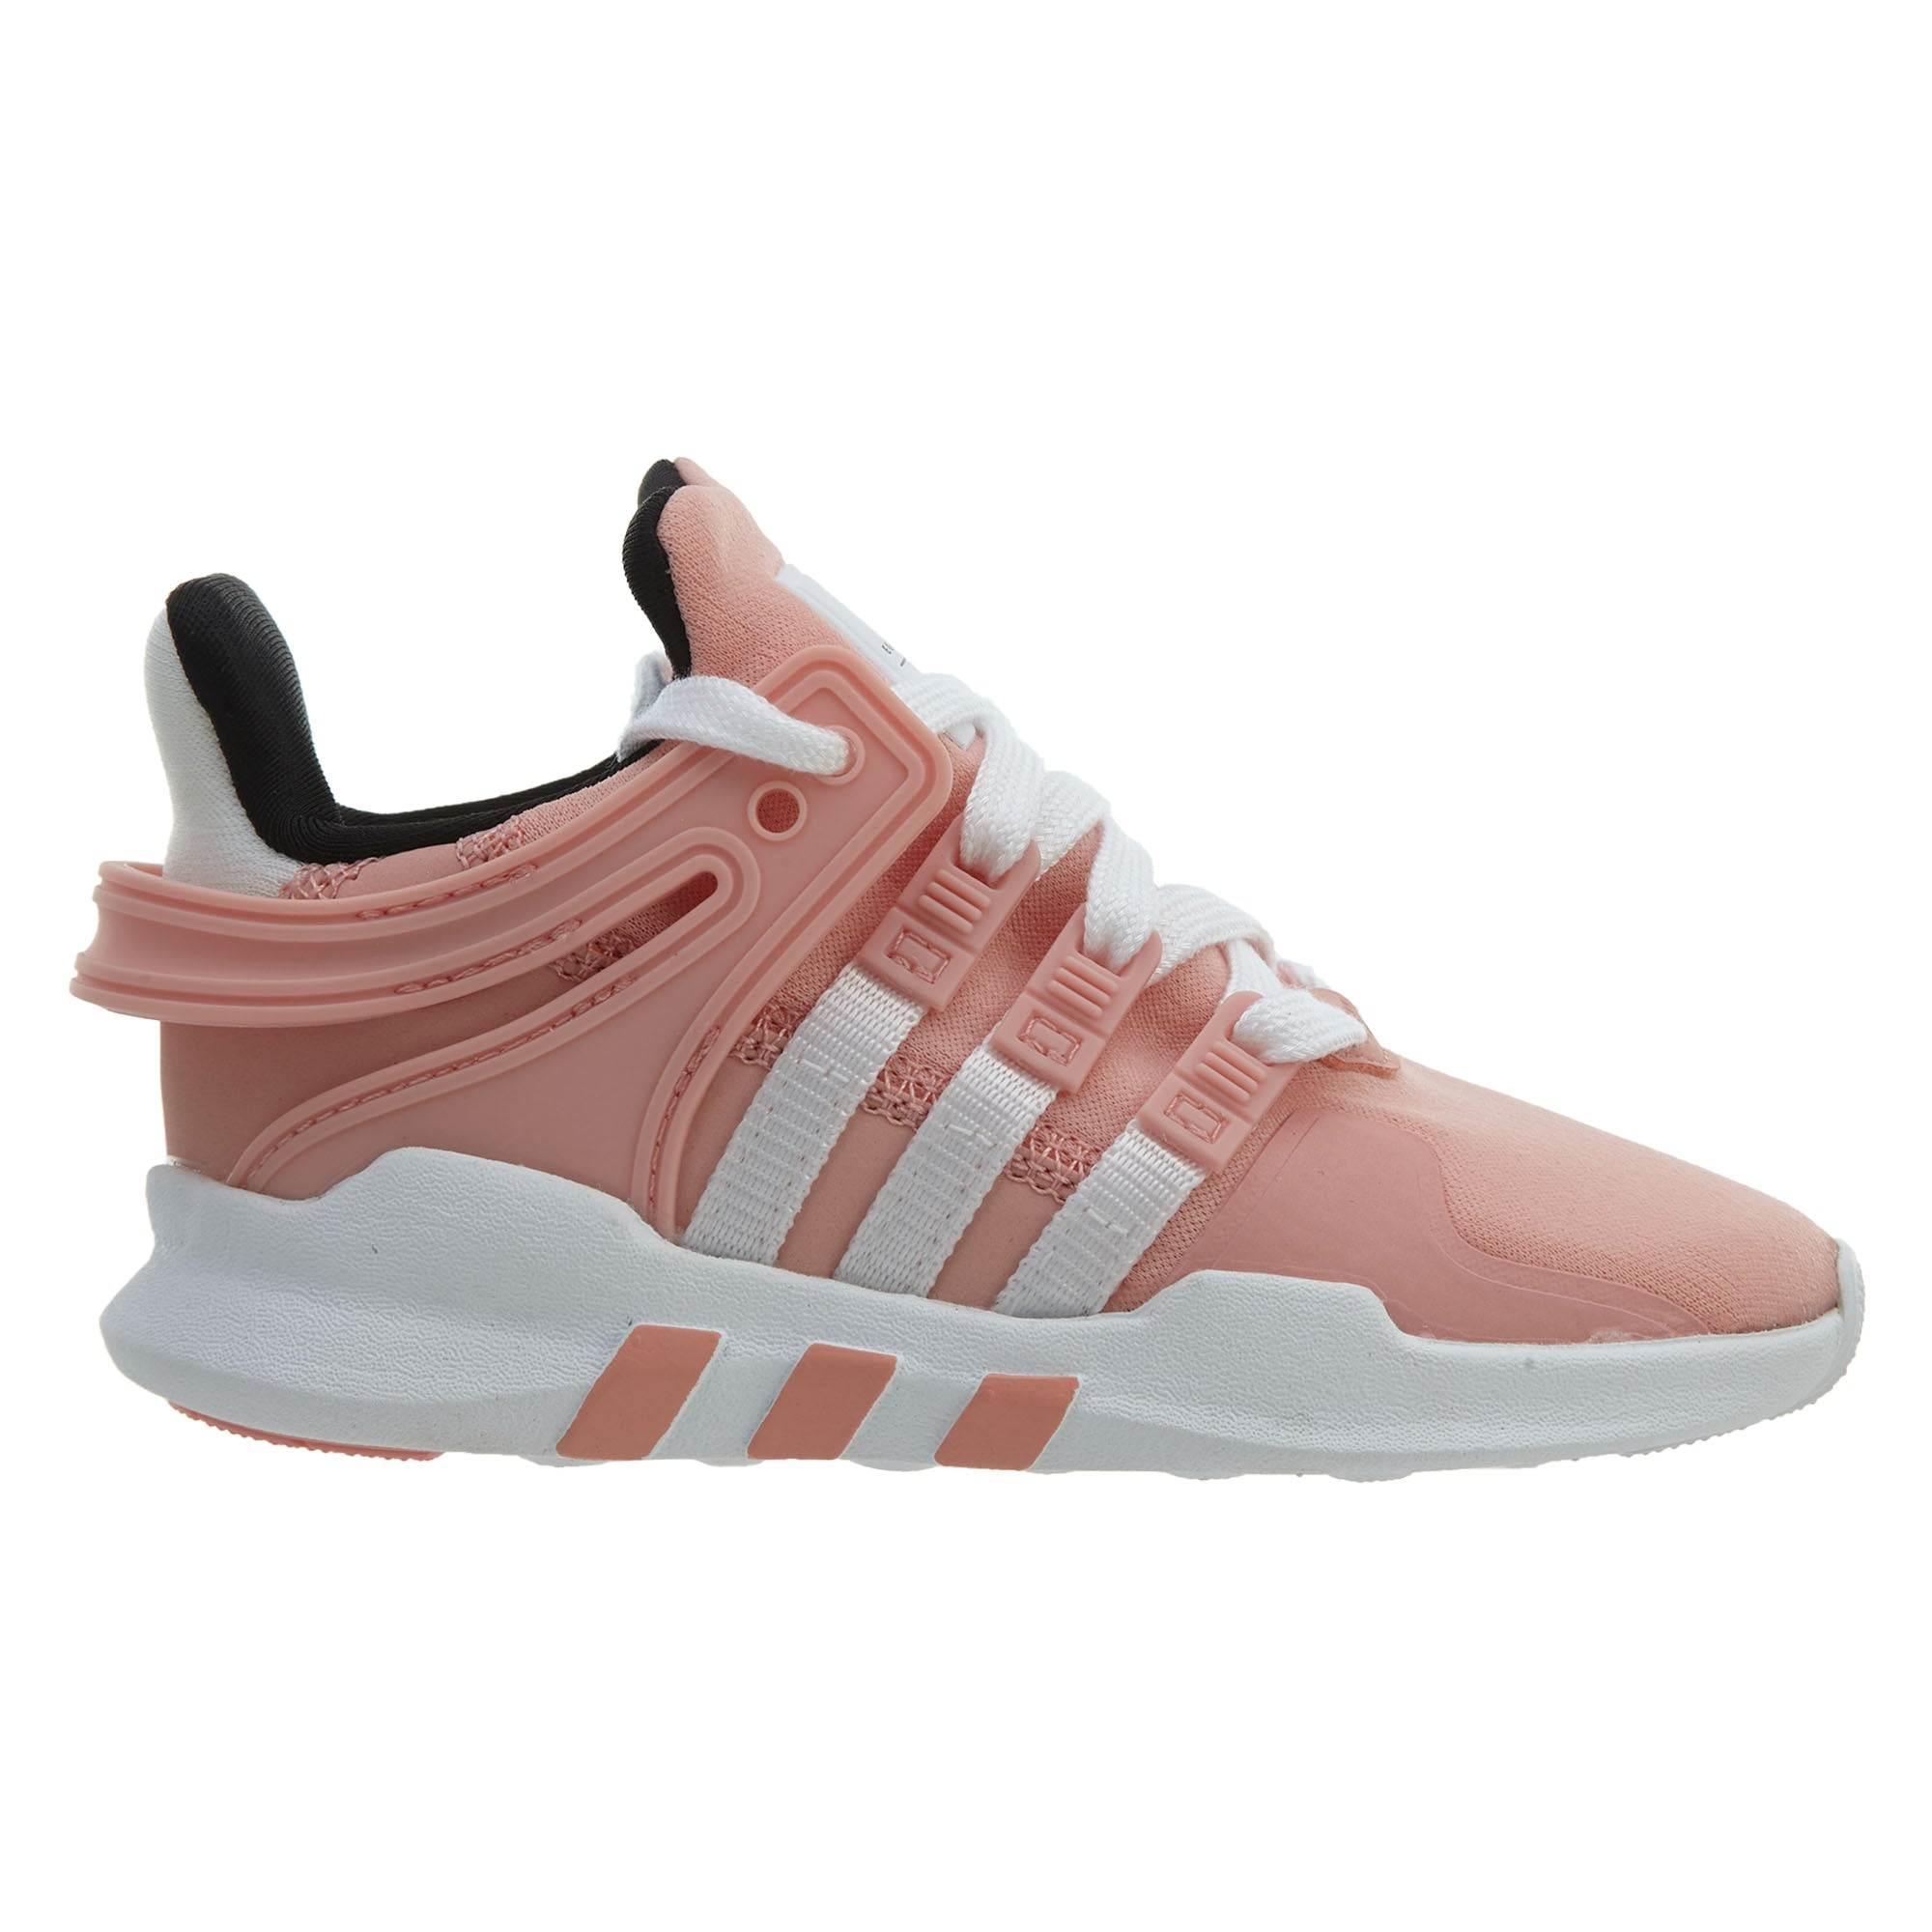 Adidas Eqt Support Adv Toddlers Style : B42026